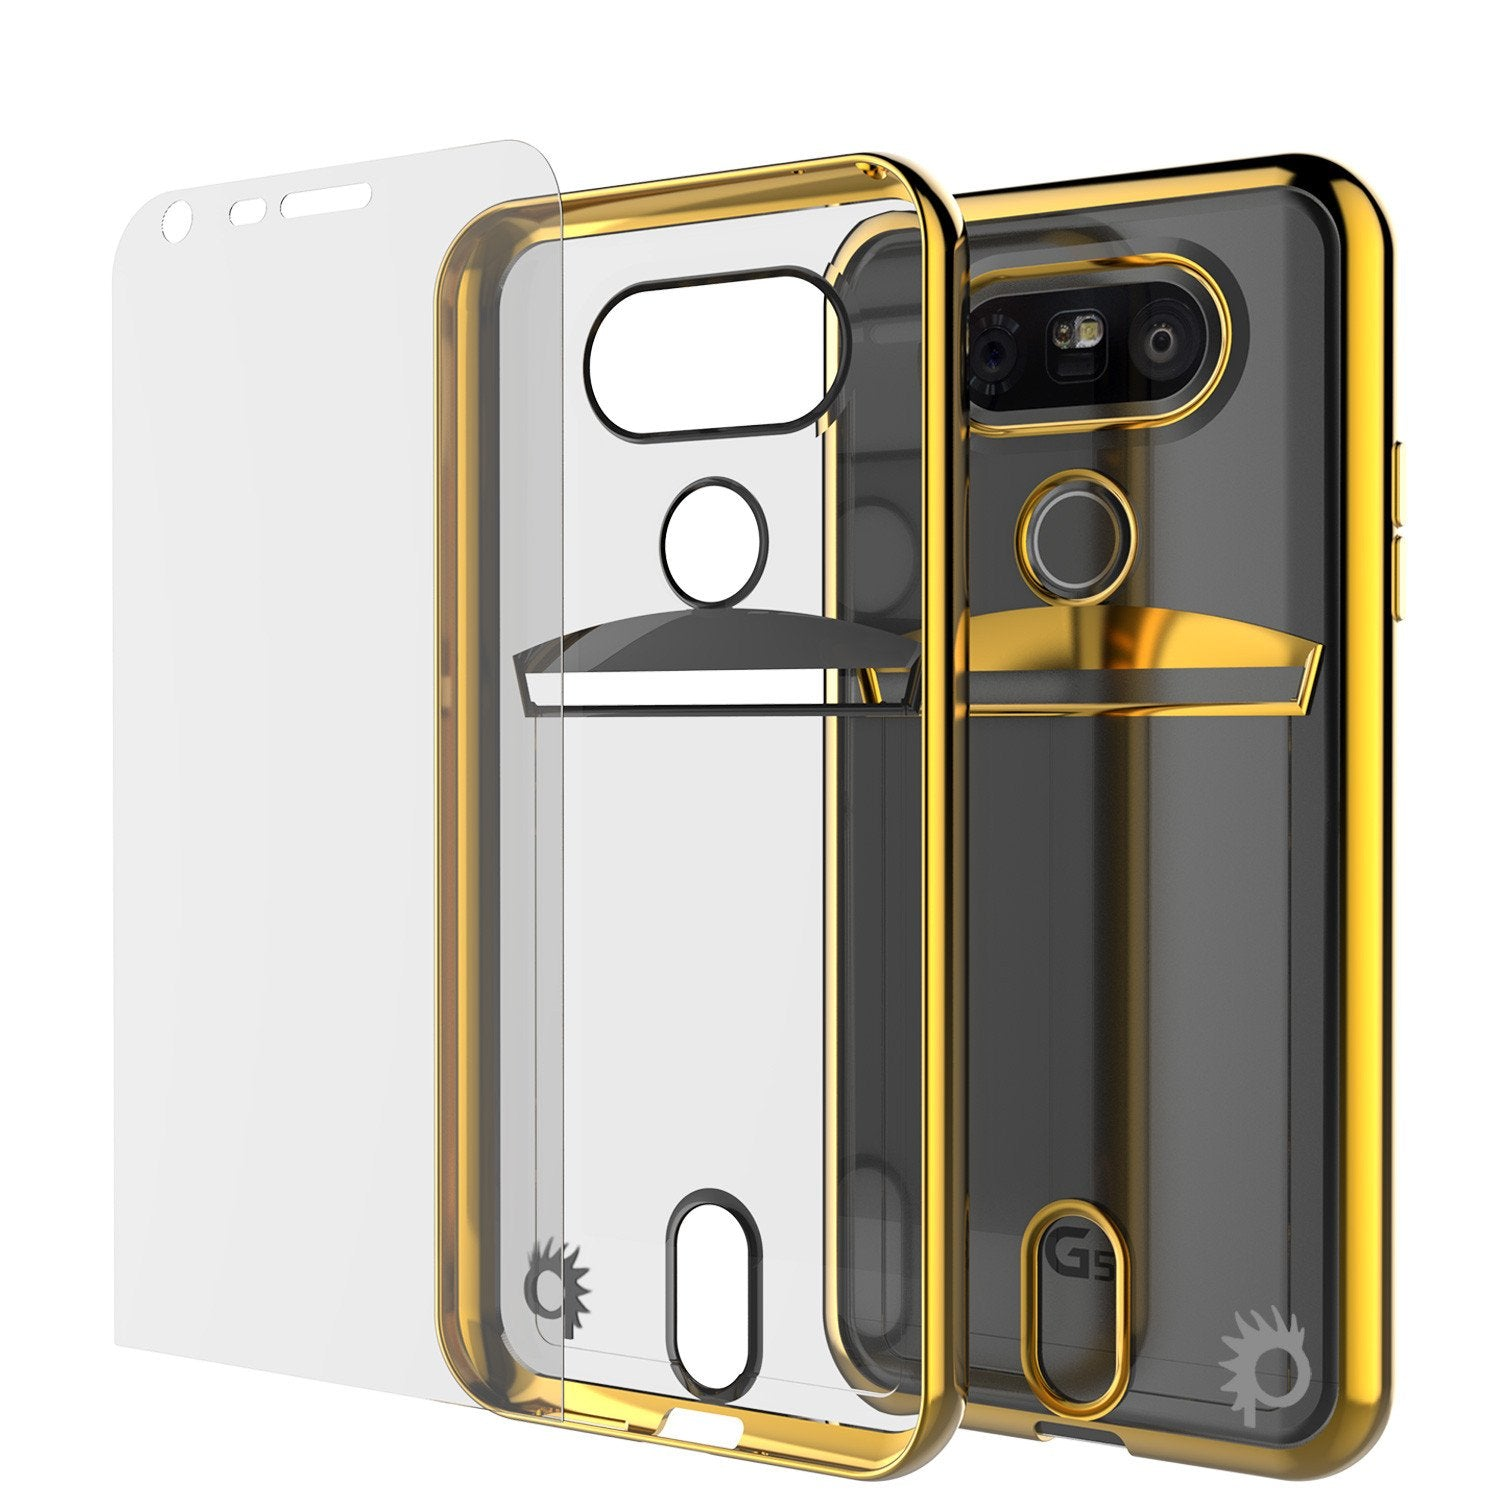 LG G5 Case, PUNKCASE® Gold LUCID Series | Card Slot | PUNK SHIELD Screen Protector | Ultra Fit - PunkCase NZ